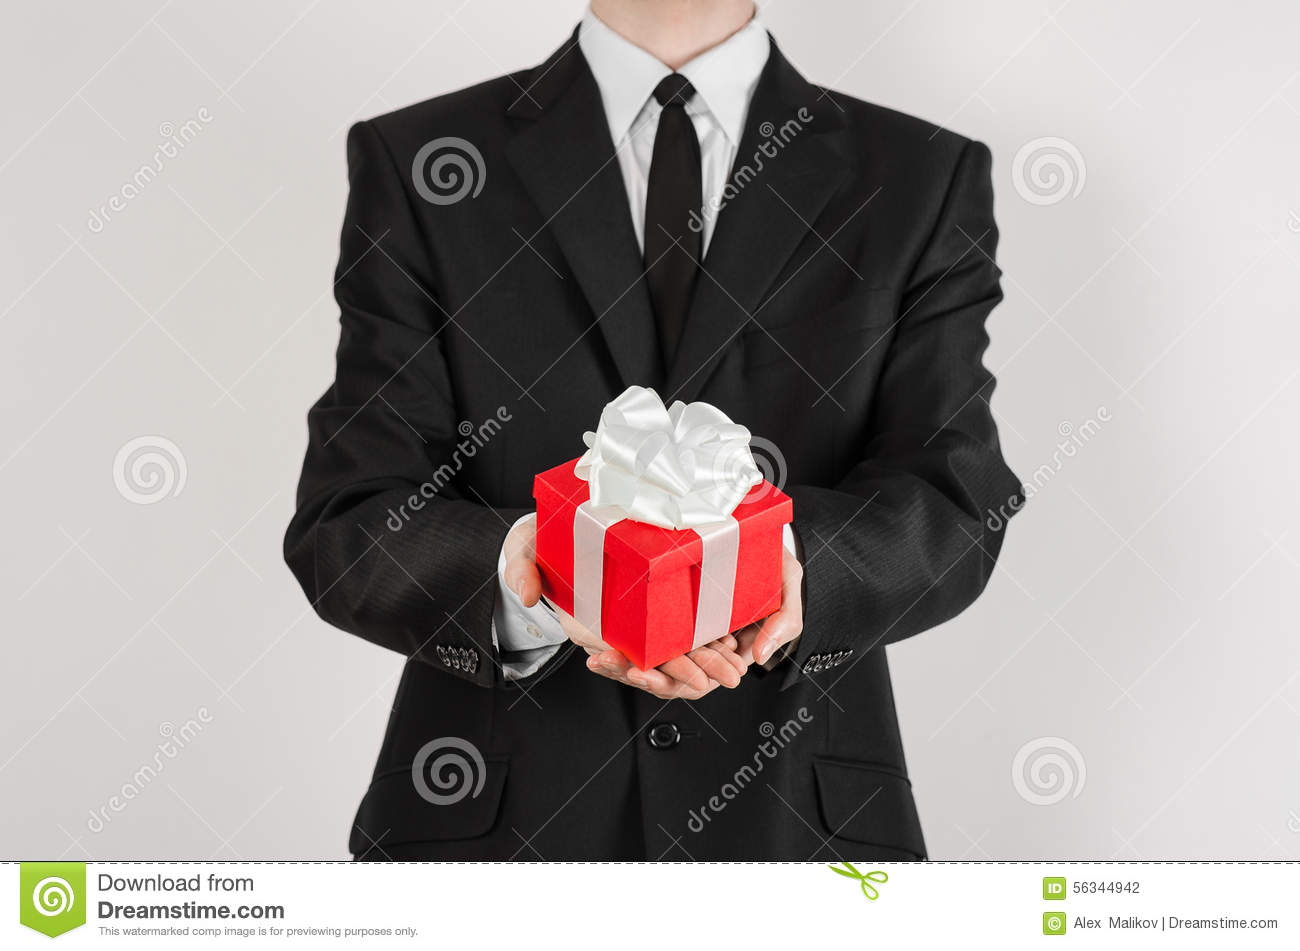 Theme holidays and gifts: a man in a black suit holds exclusive gift wrapped in red box with white ribbon and bow isolated on a